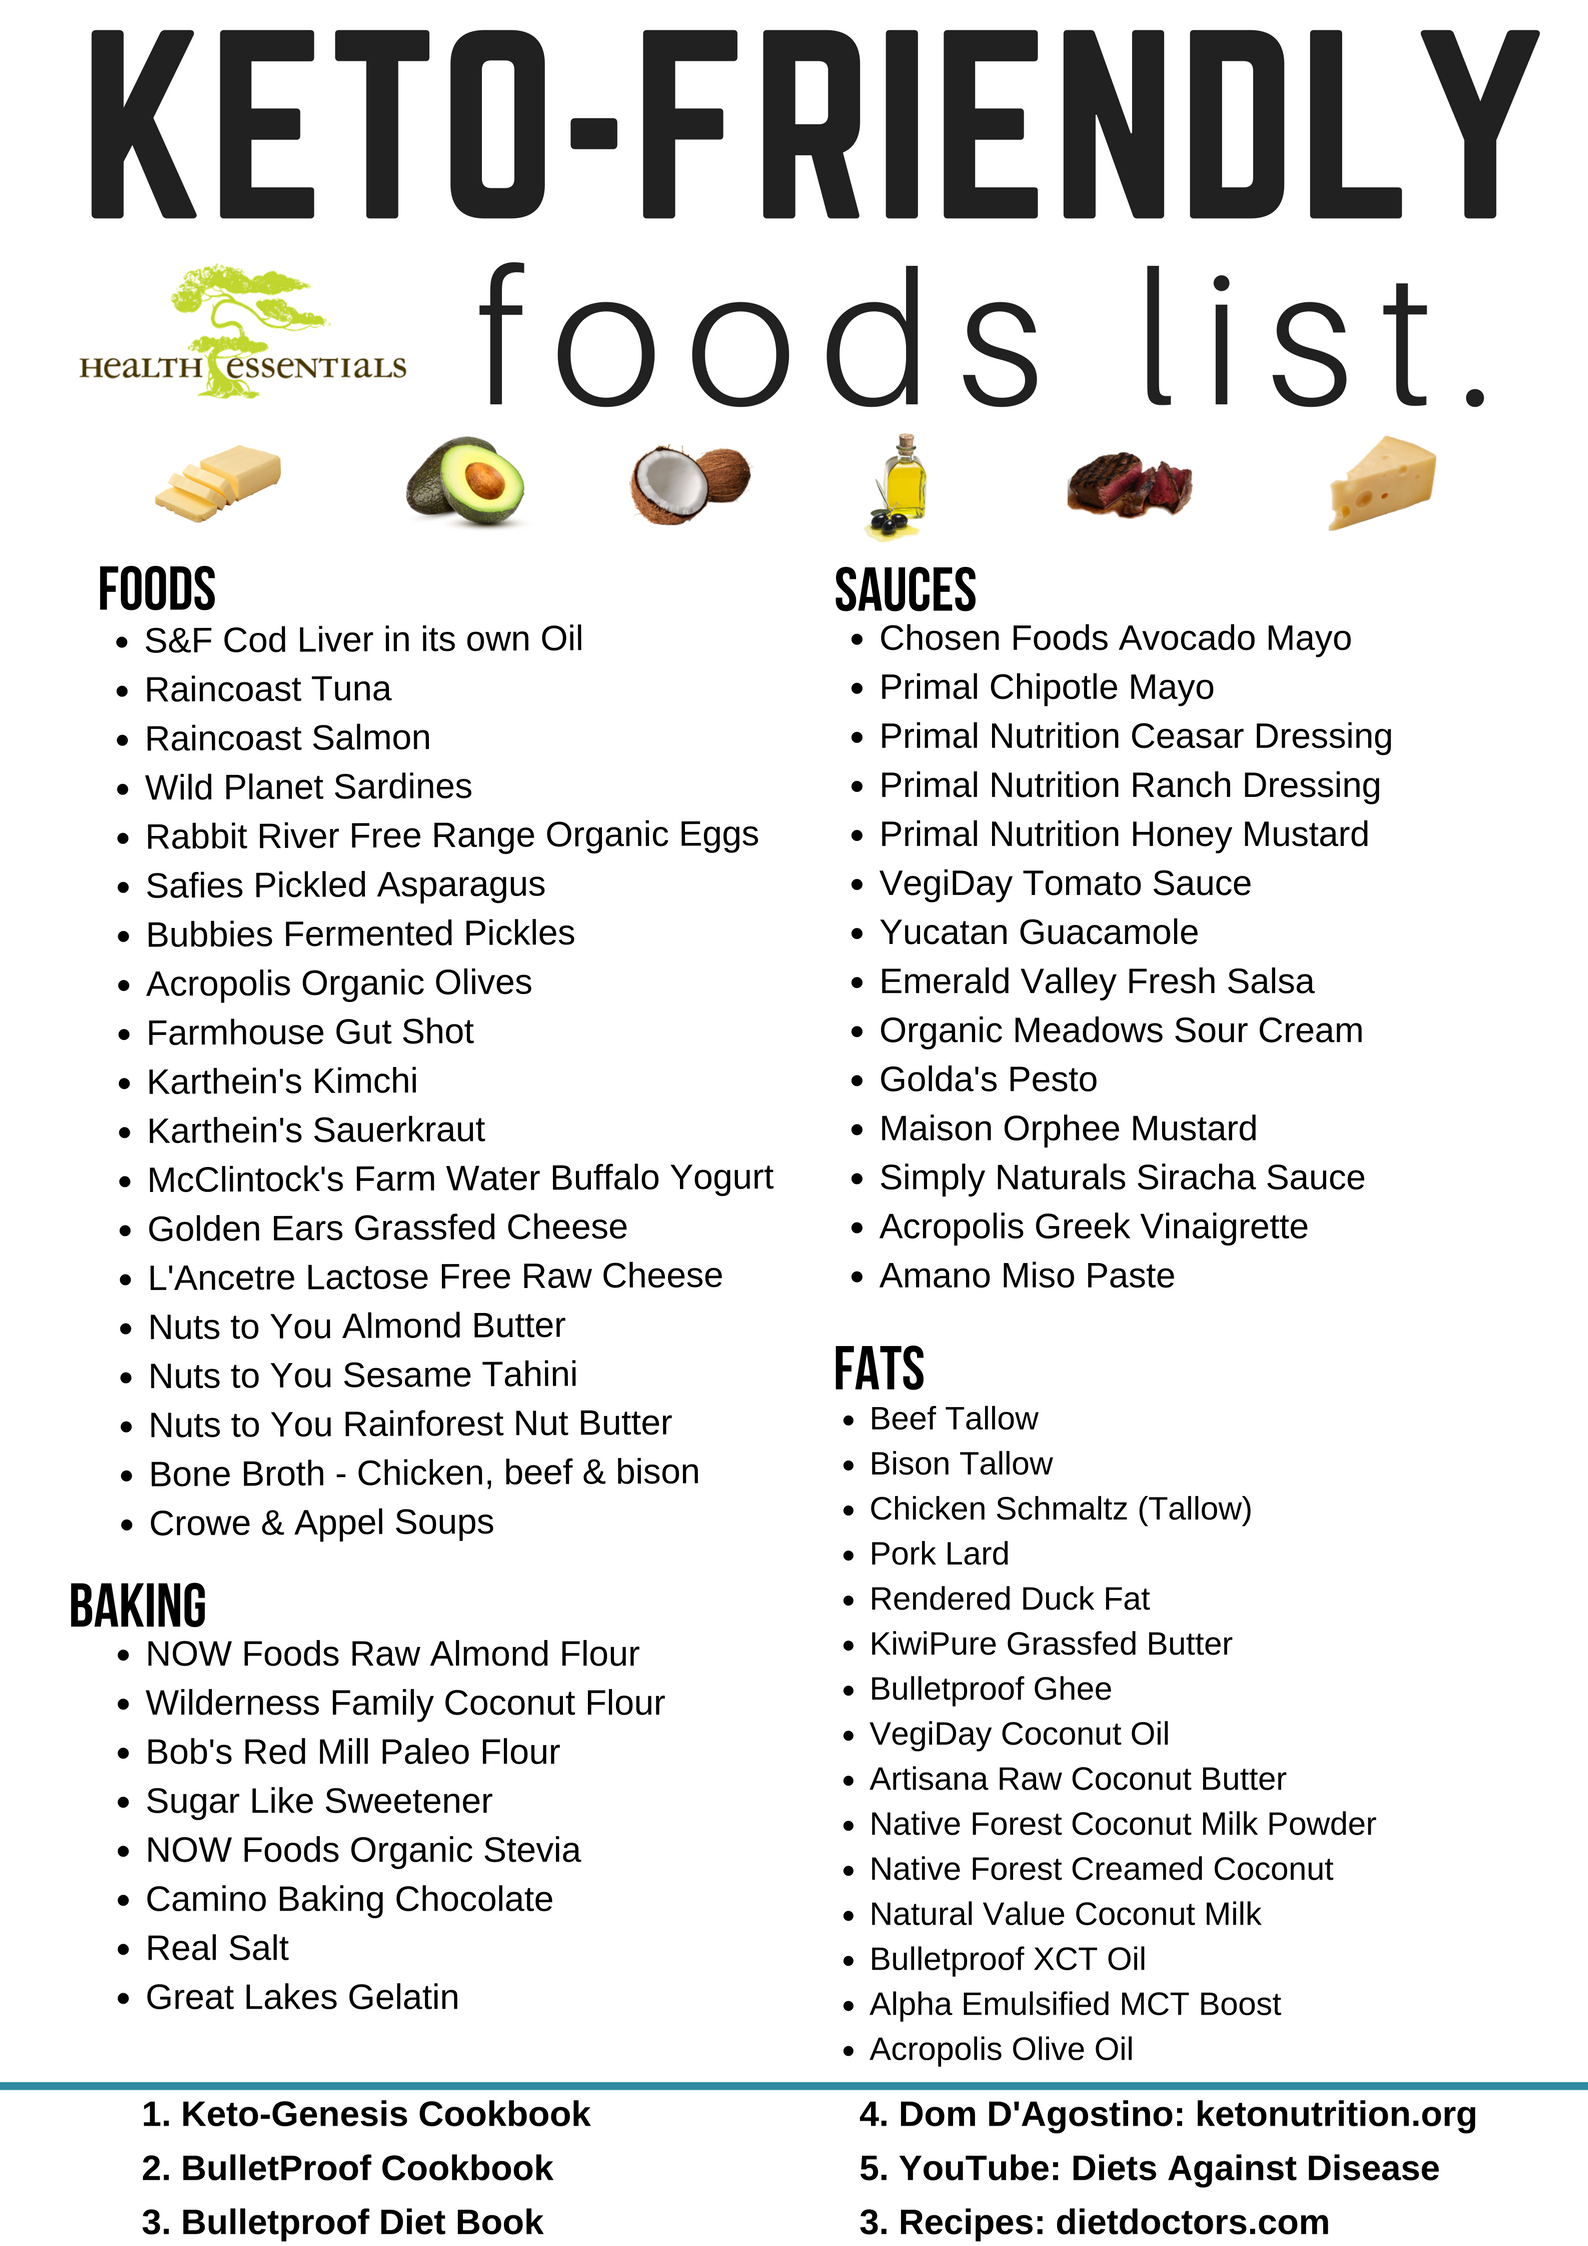 Ketogenic Foods List